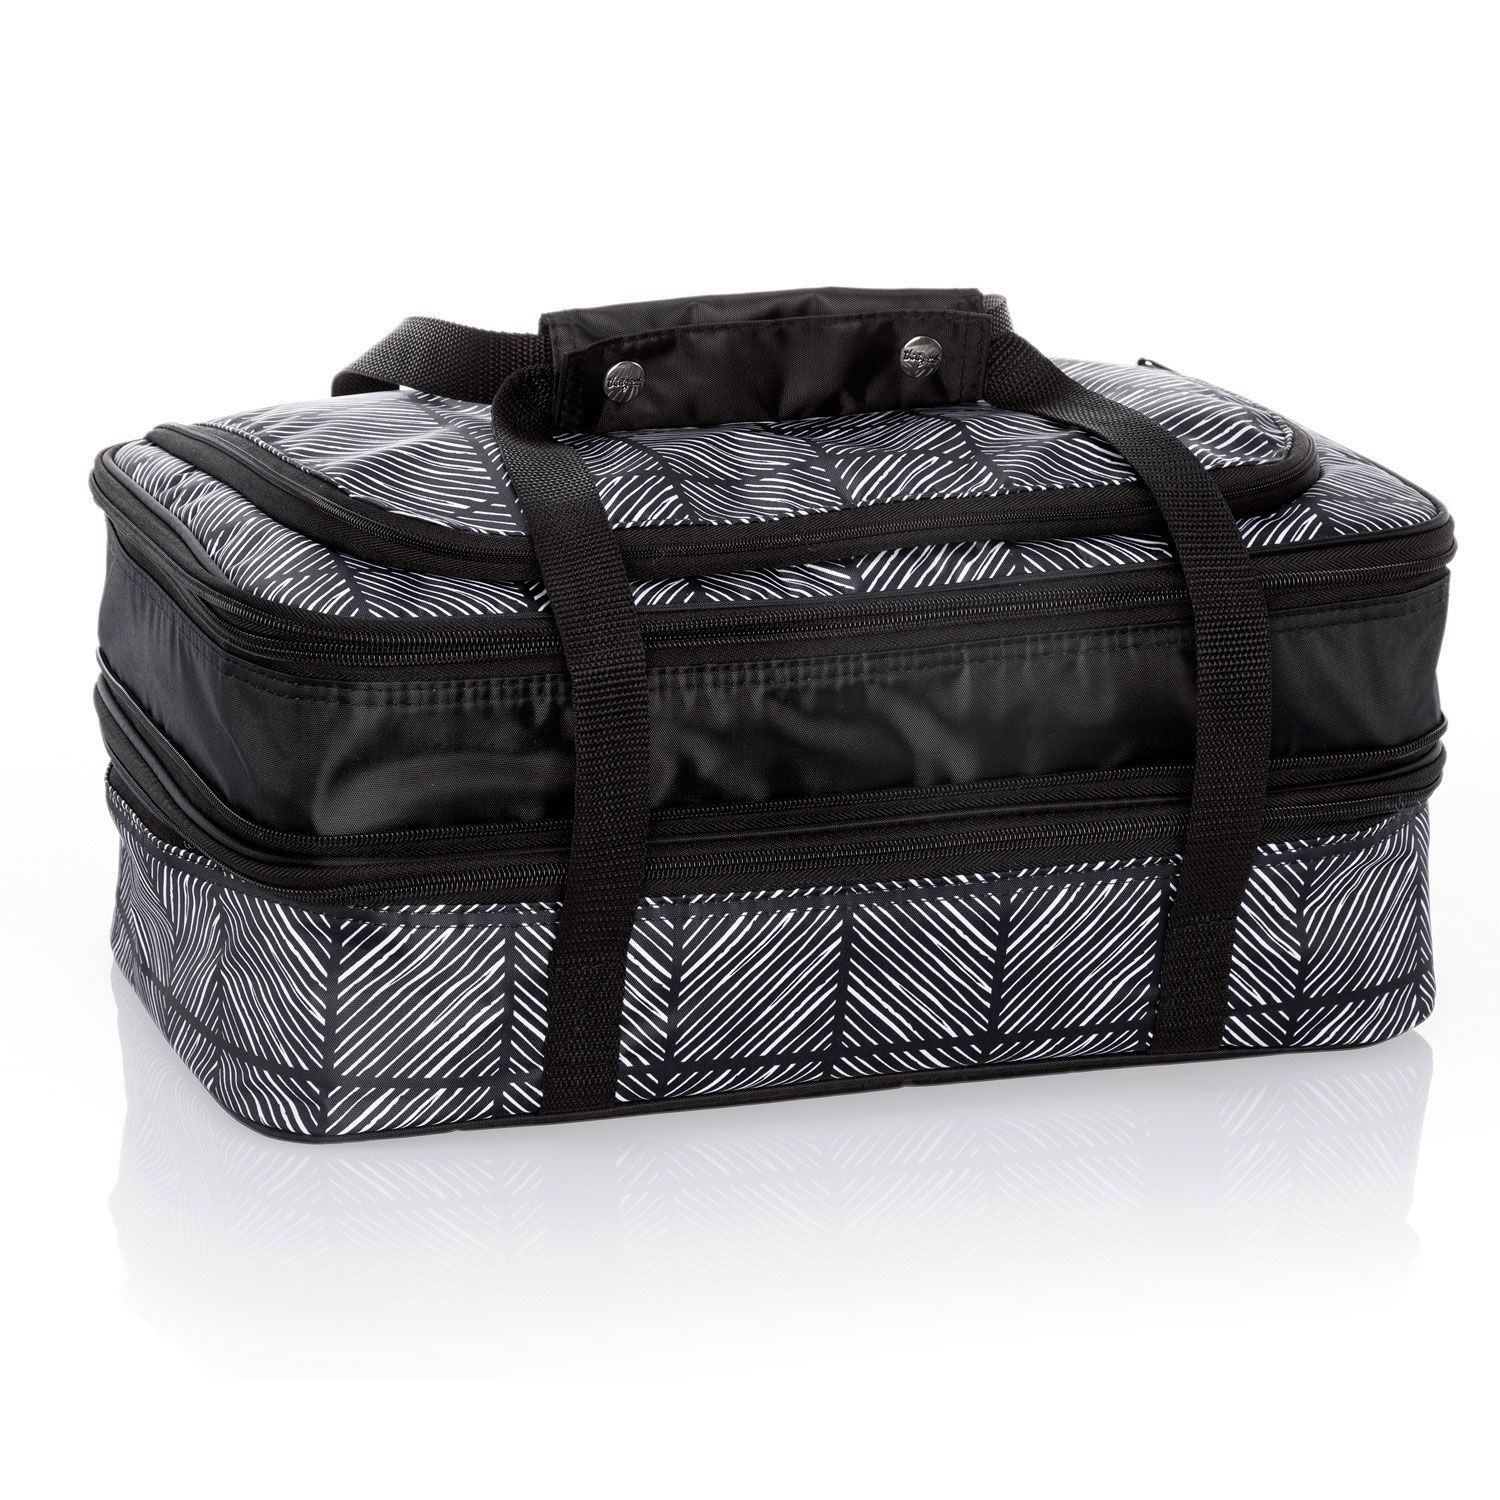 "c66ac96e67 Why you ll love it  The Perfect Party Set expands to hold two 9"" x 13""  casserole pans inside 2 interior water-resistant thermal compartments."